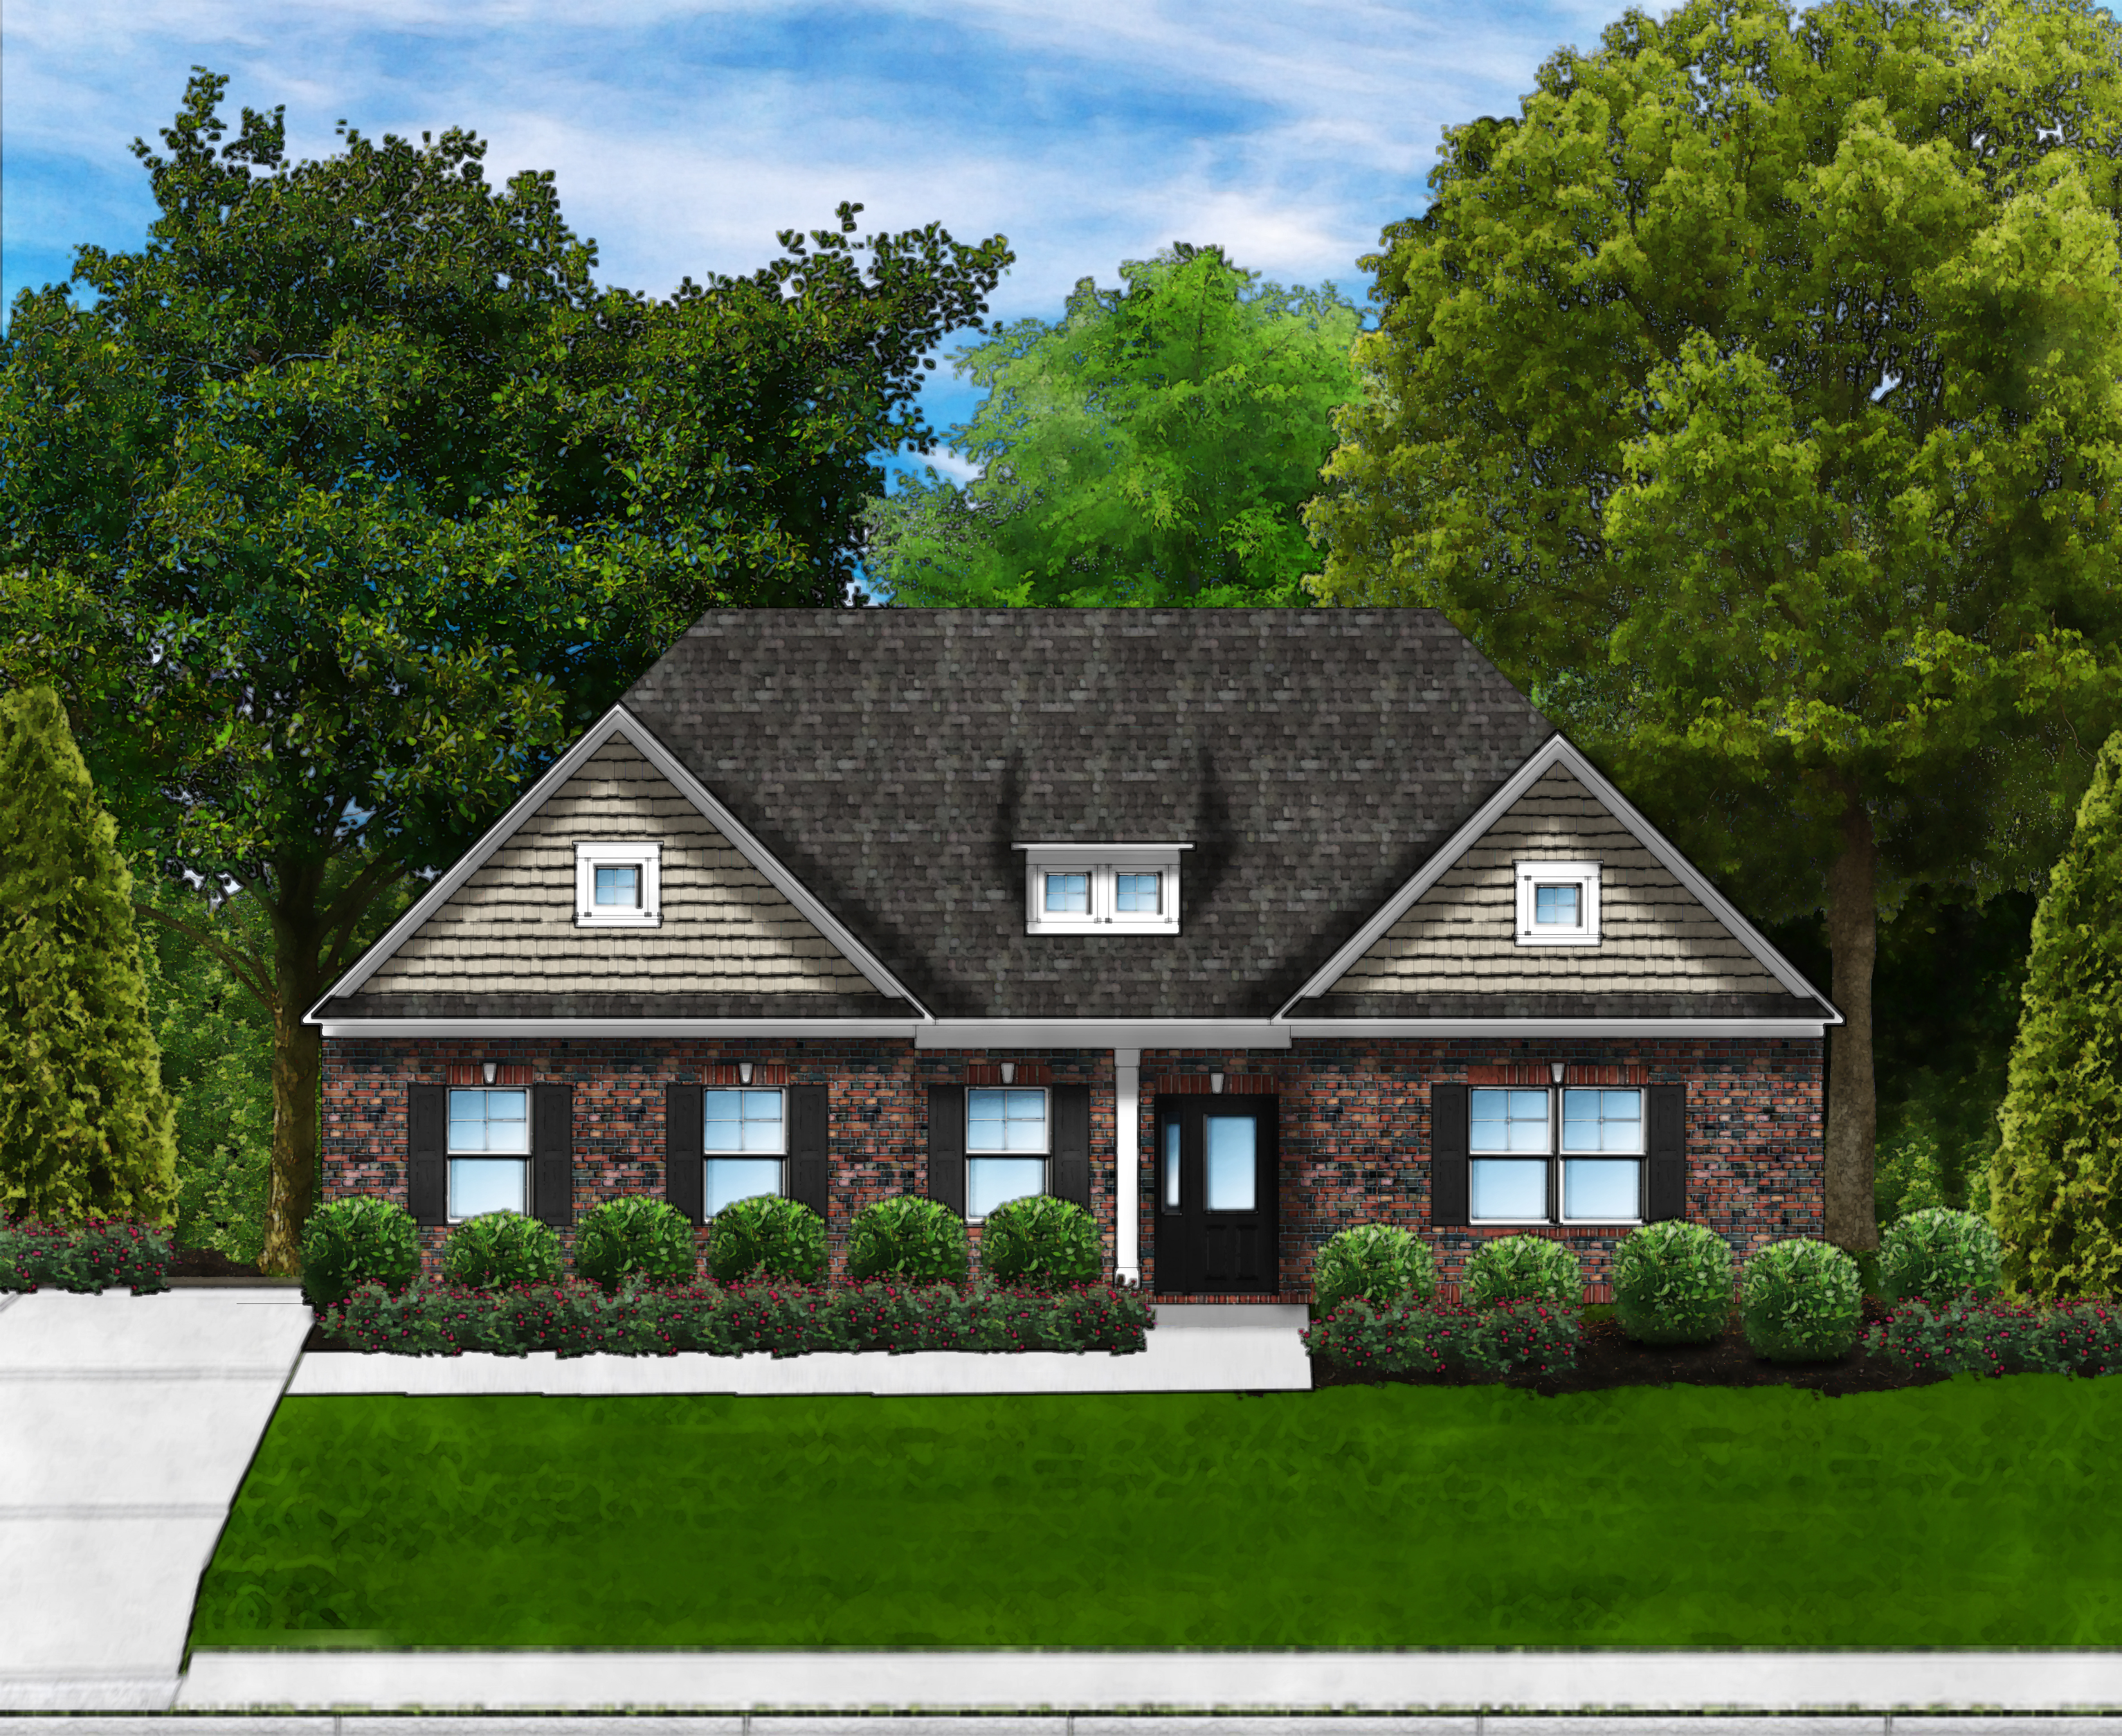 Marsh Bay D4 (Brick Front) by Great Southern Homes